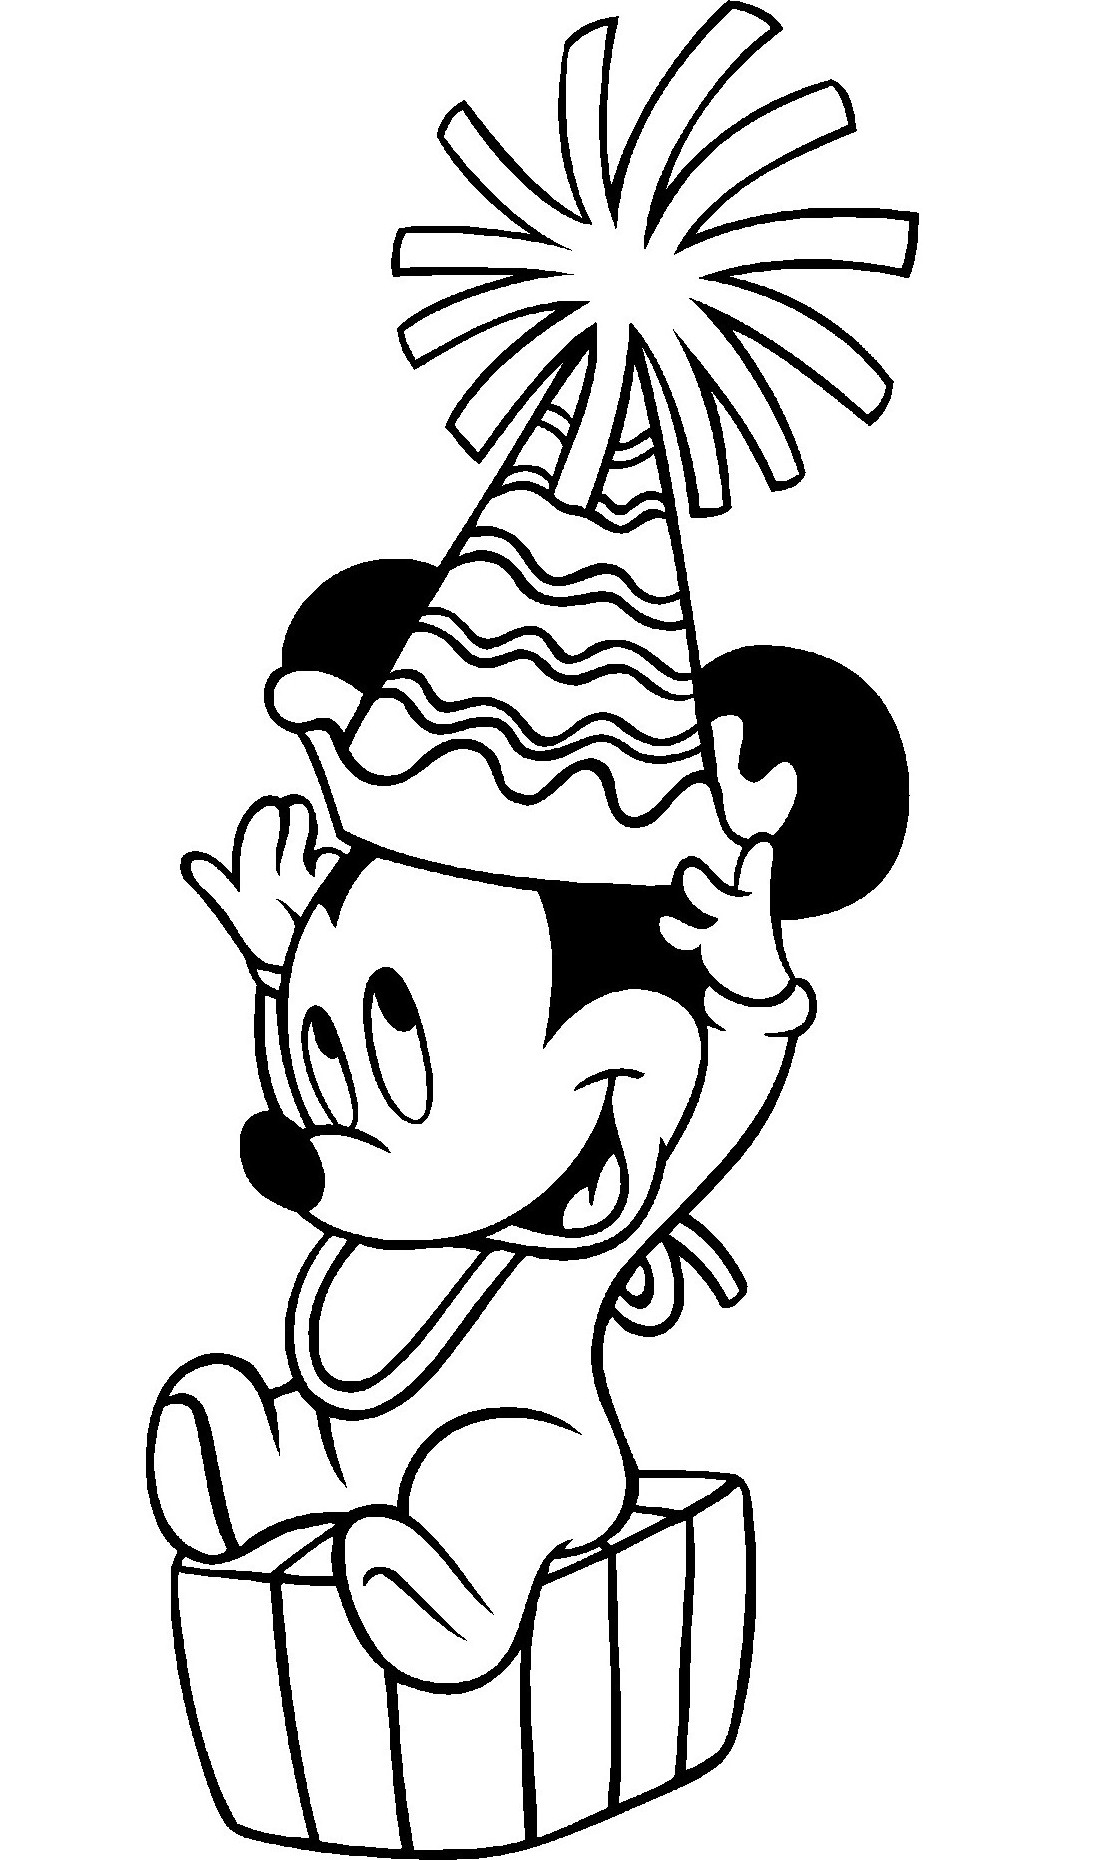 Coloring Pages Mickey Mouse Birthday : Free printable mickey mouse coloring pages for kids